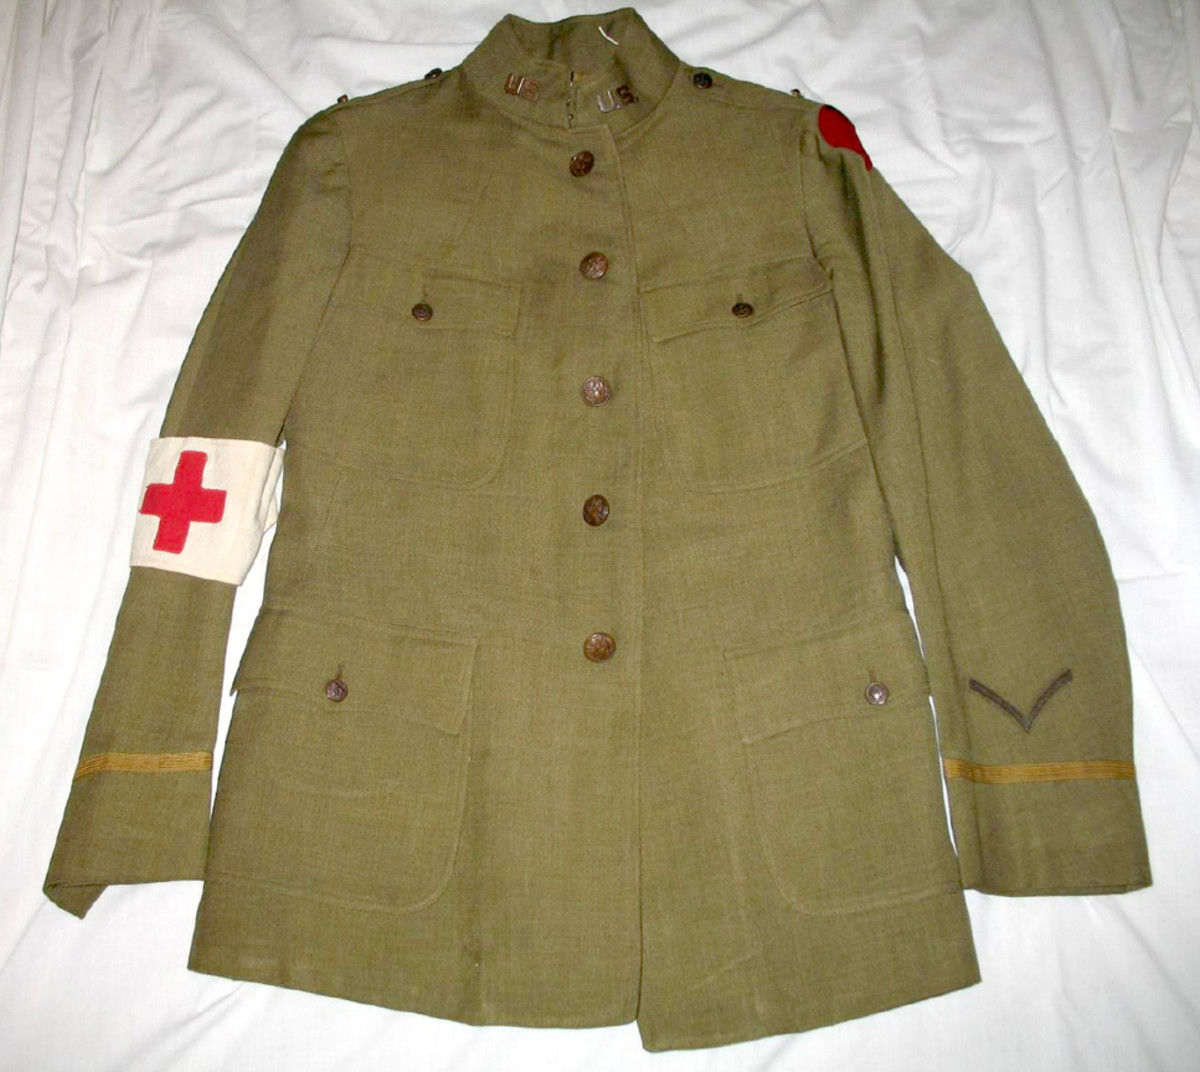 Chaplain Arthur A. LeMay's privately purchased officer's uniform was patterned on the Model 1917 Army tunic. Alder & Brothers of Rochester, New York, one of the city's finest clothiers, produced the high quality and well-tailored tunic.